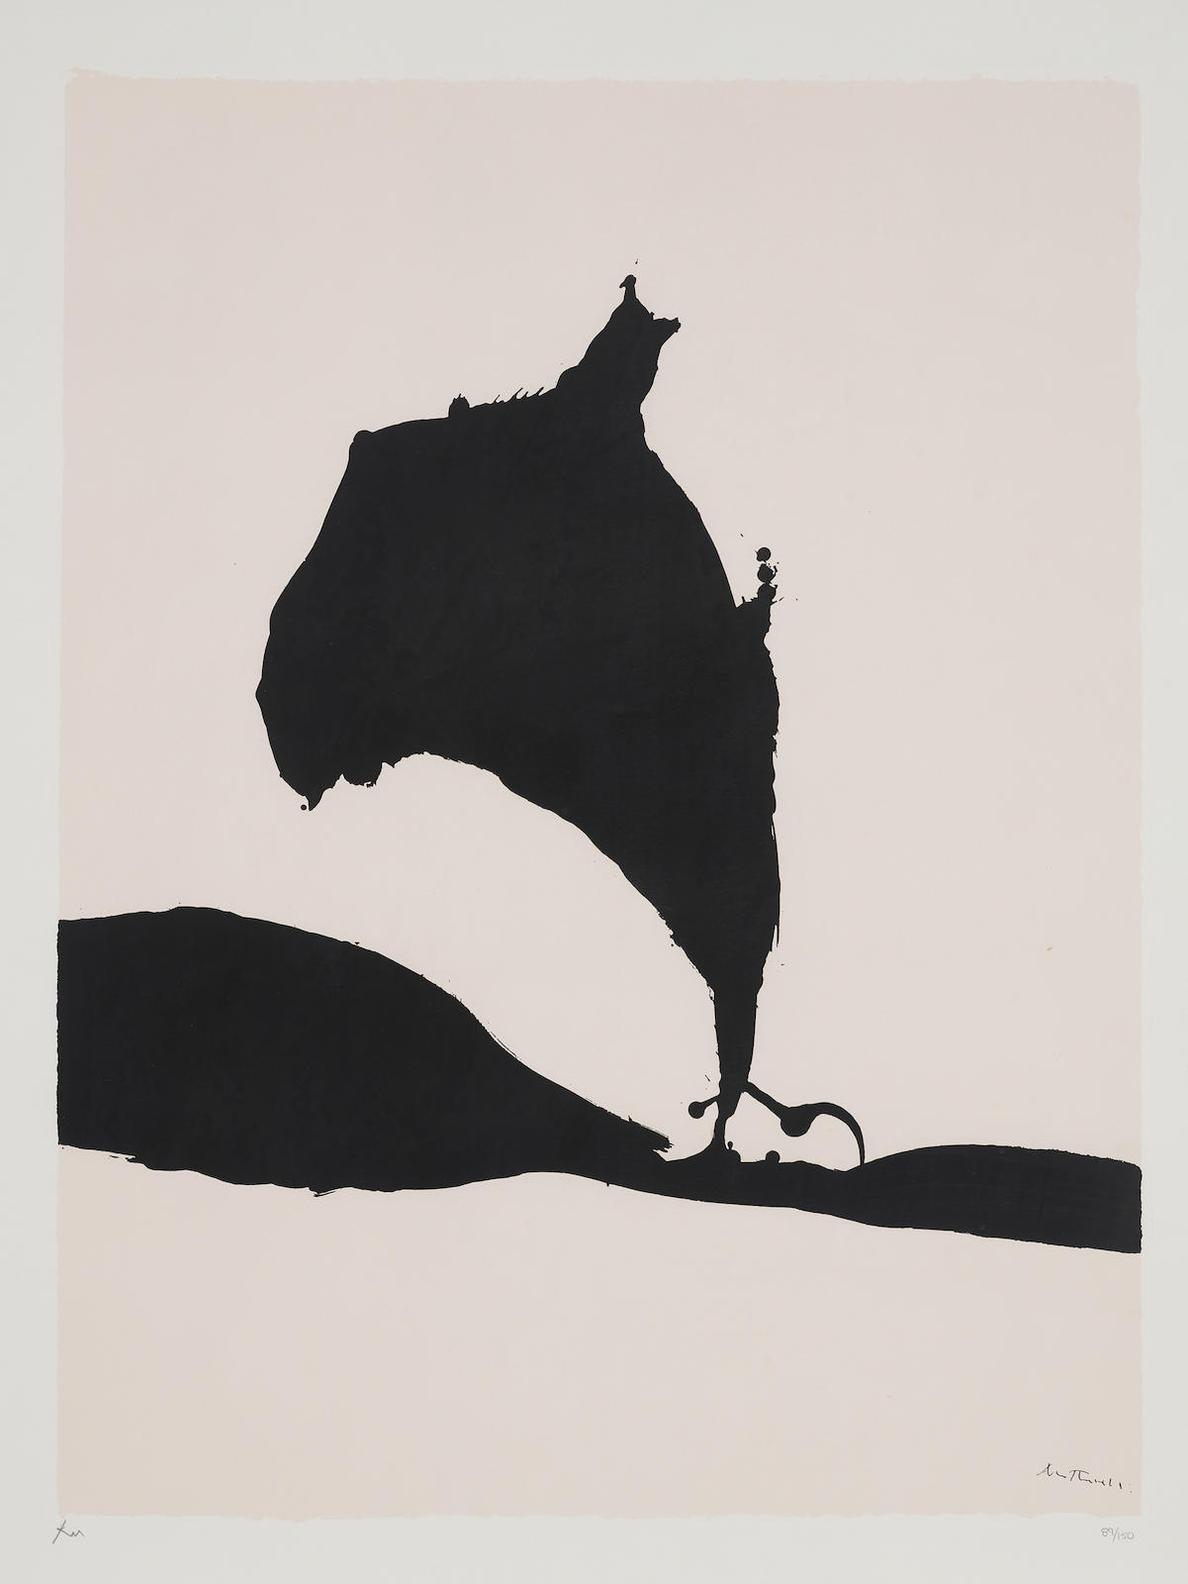 Robert Motherwell-Africa 9, From Africa Series-1970